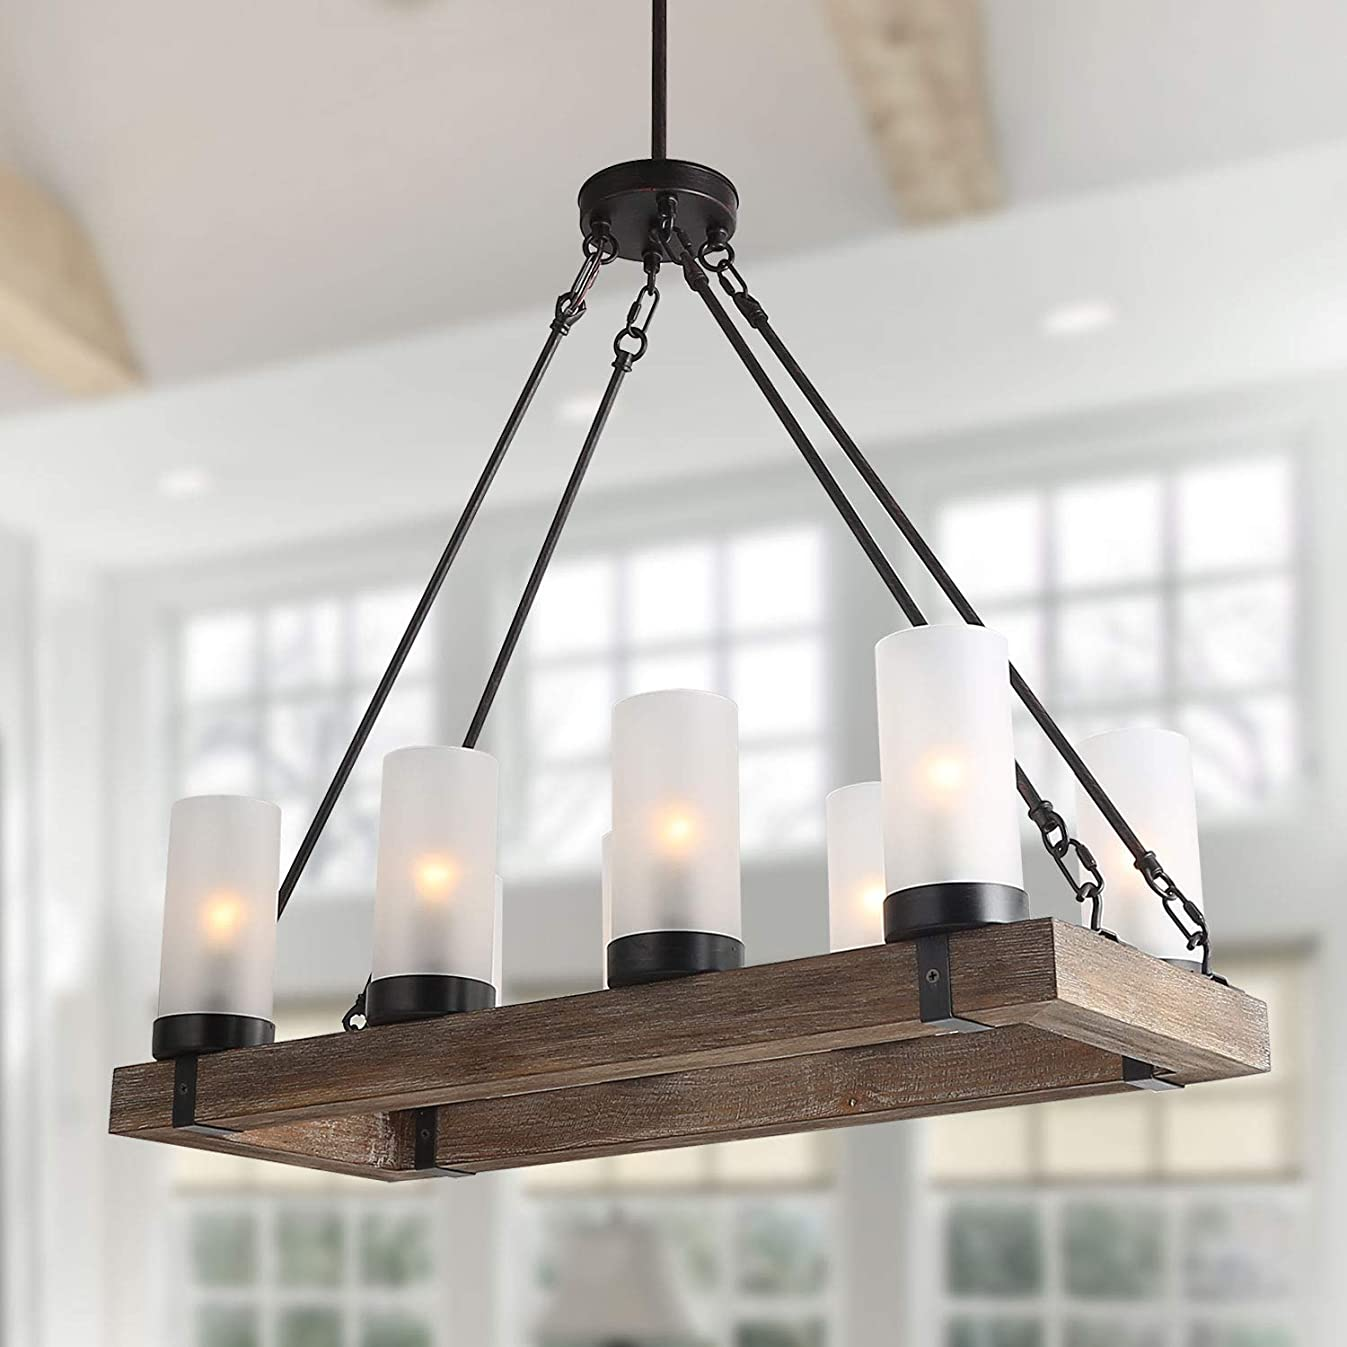 LNC Wood Kitchen Lighting Fixtures Rectangular Farmhouse Chandelier for Dining Rooms, A02988